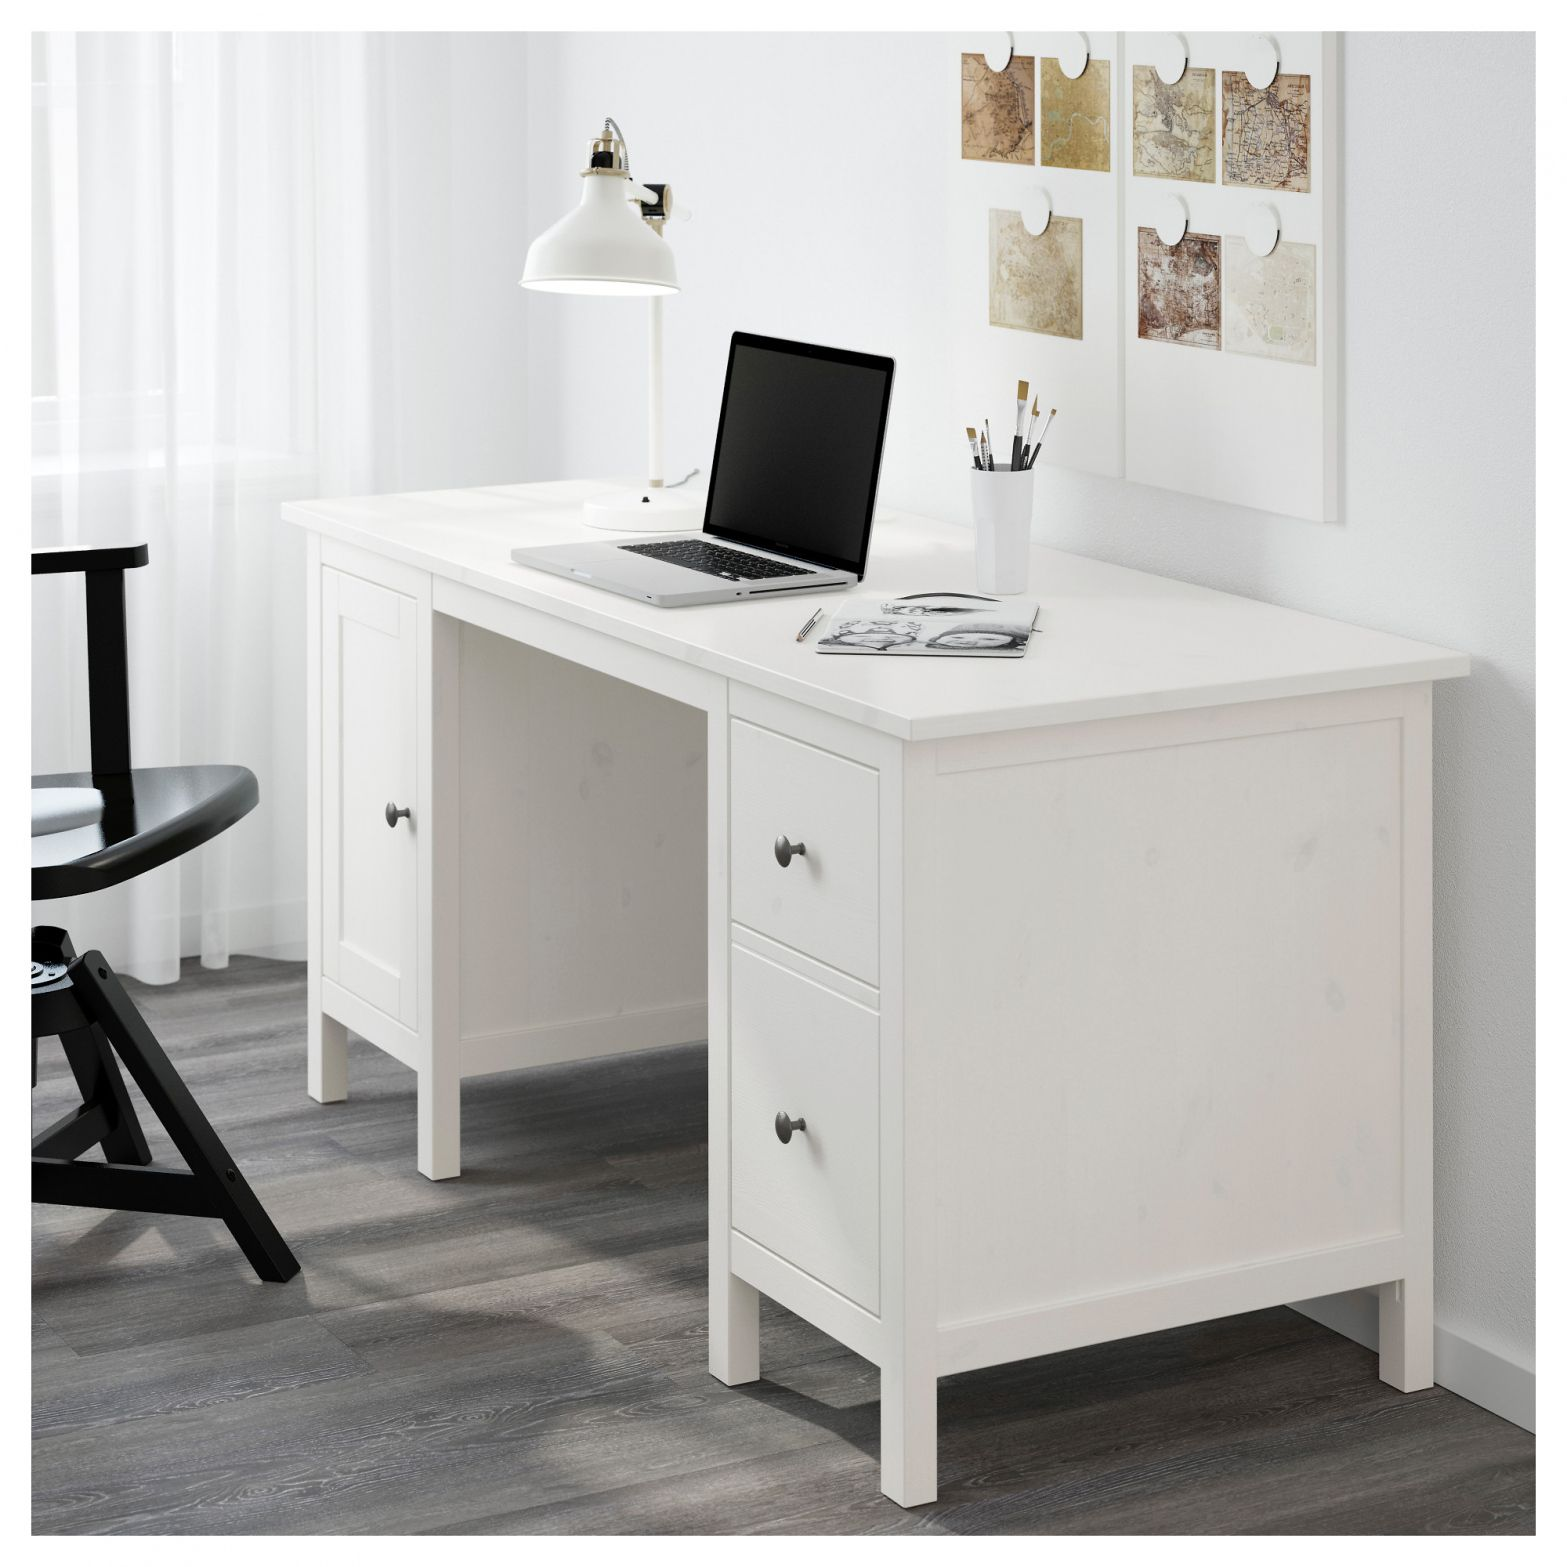 ikea office furniture uk. 2019 Ikea Office Desks Uk - Home Furniture Collections Check More At  Http:/ Ikea Office Furniture Uk